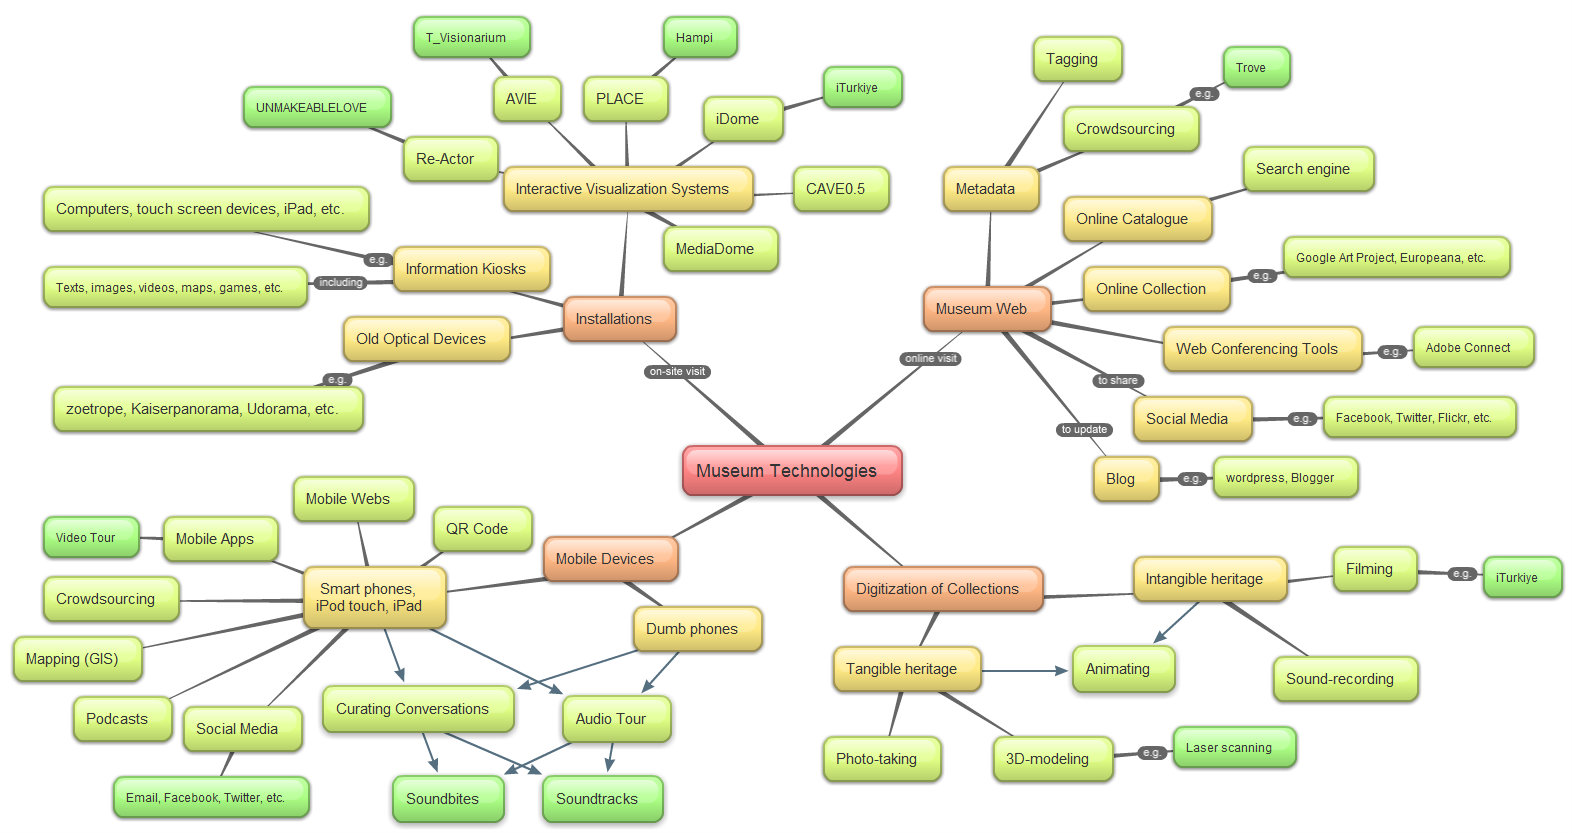 Technology Concept Map Mind Map – Museum Technologies